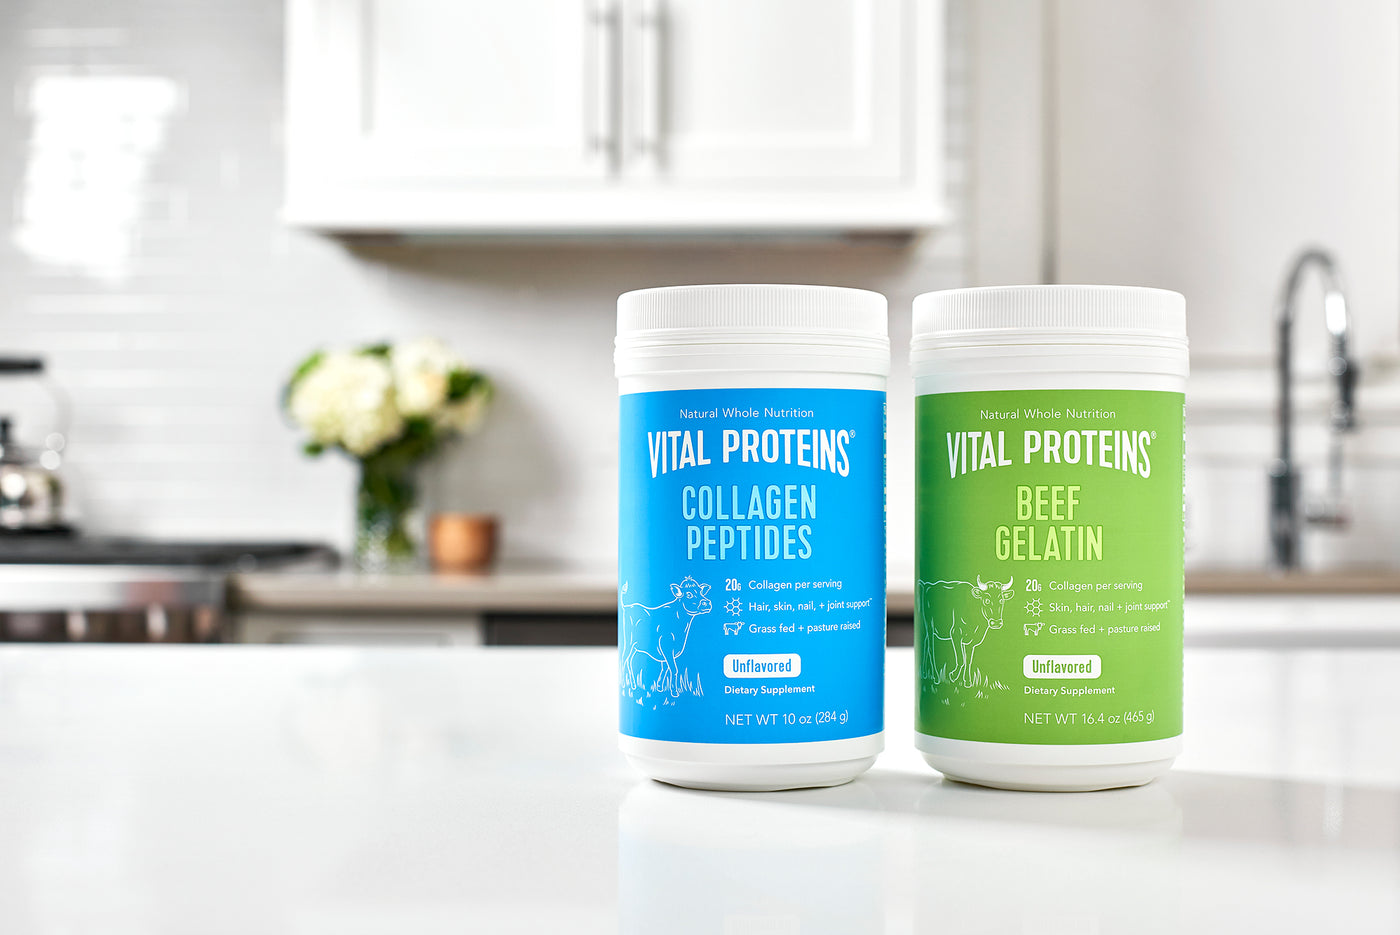 Your Guide to Collagen vs. Beef Gelatin - Vital Proteins